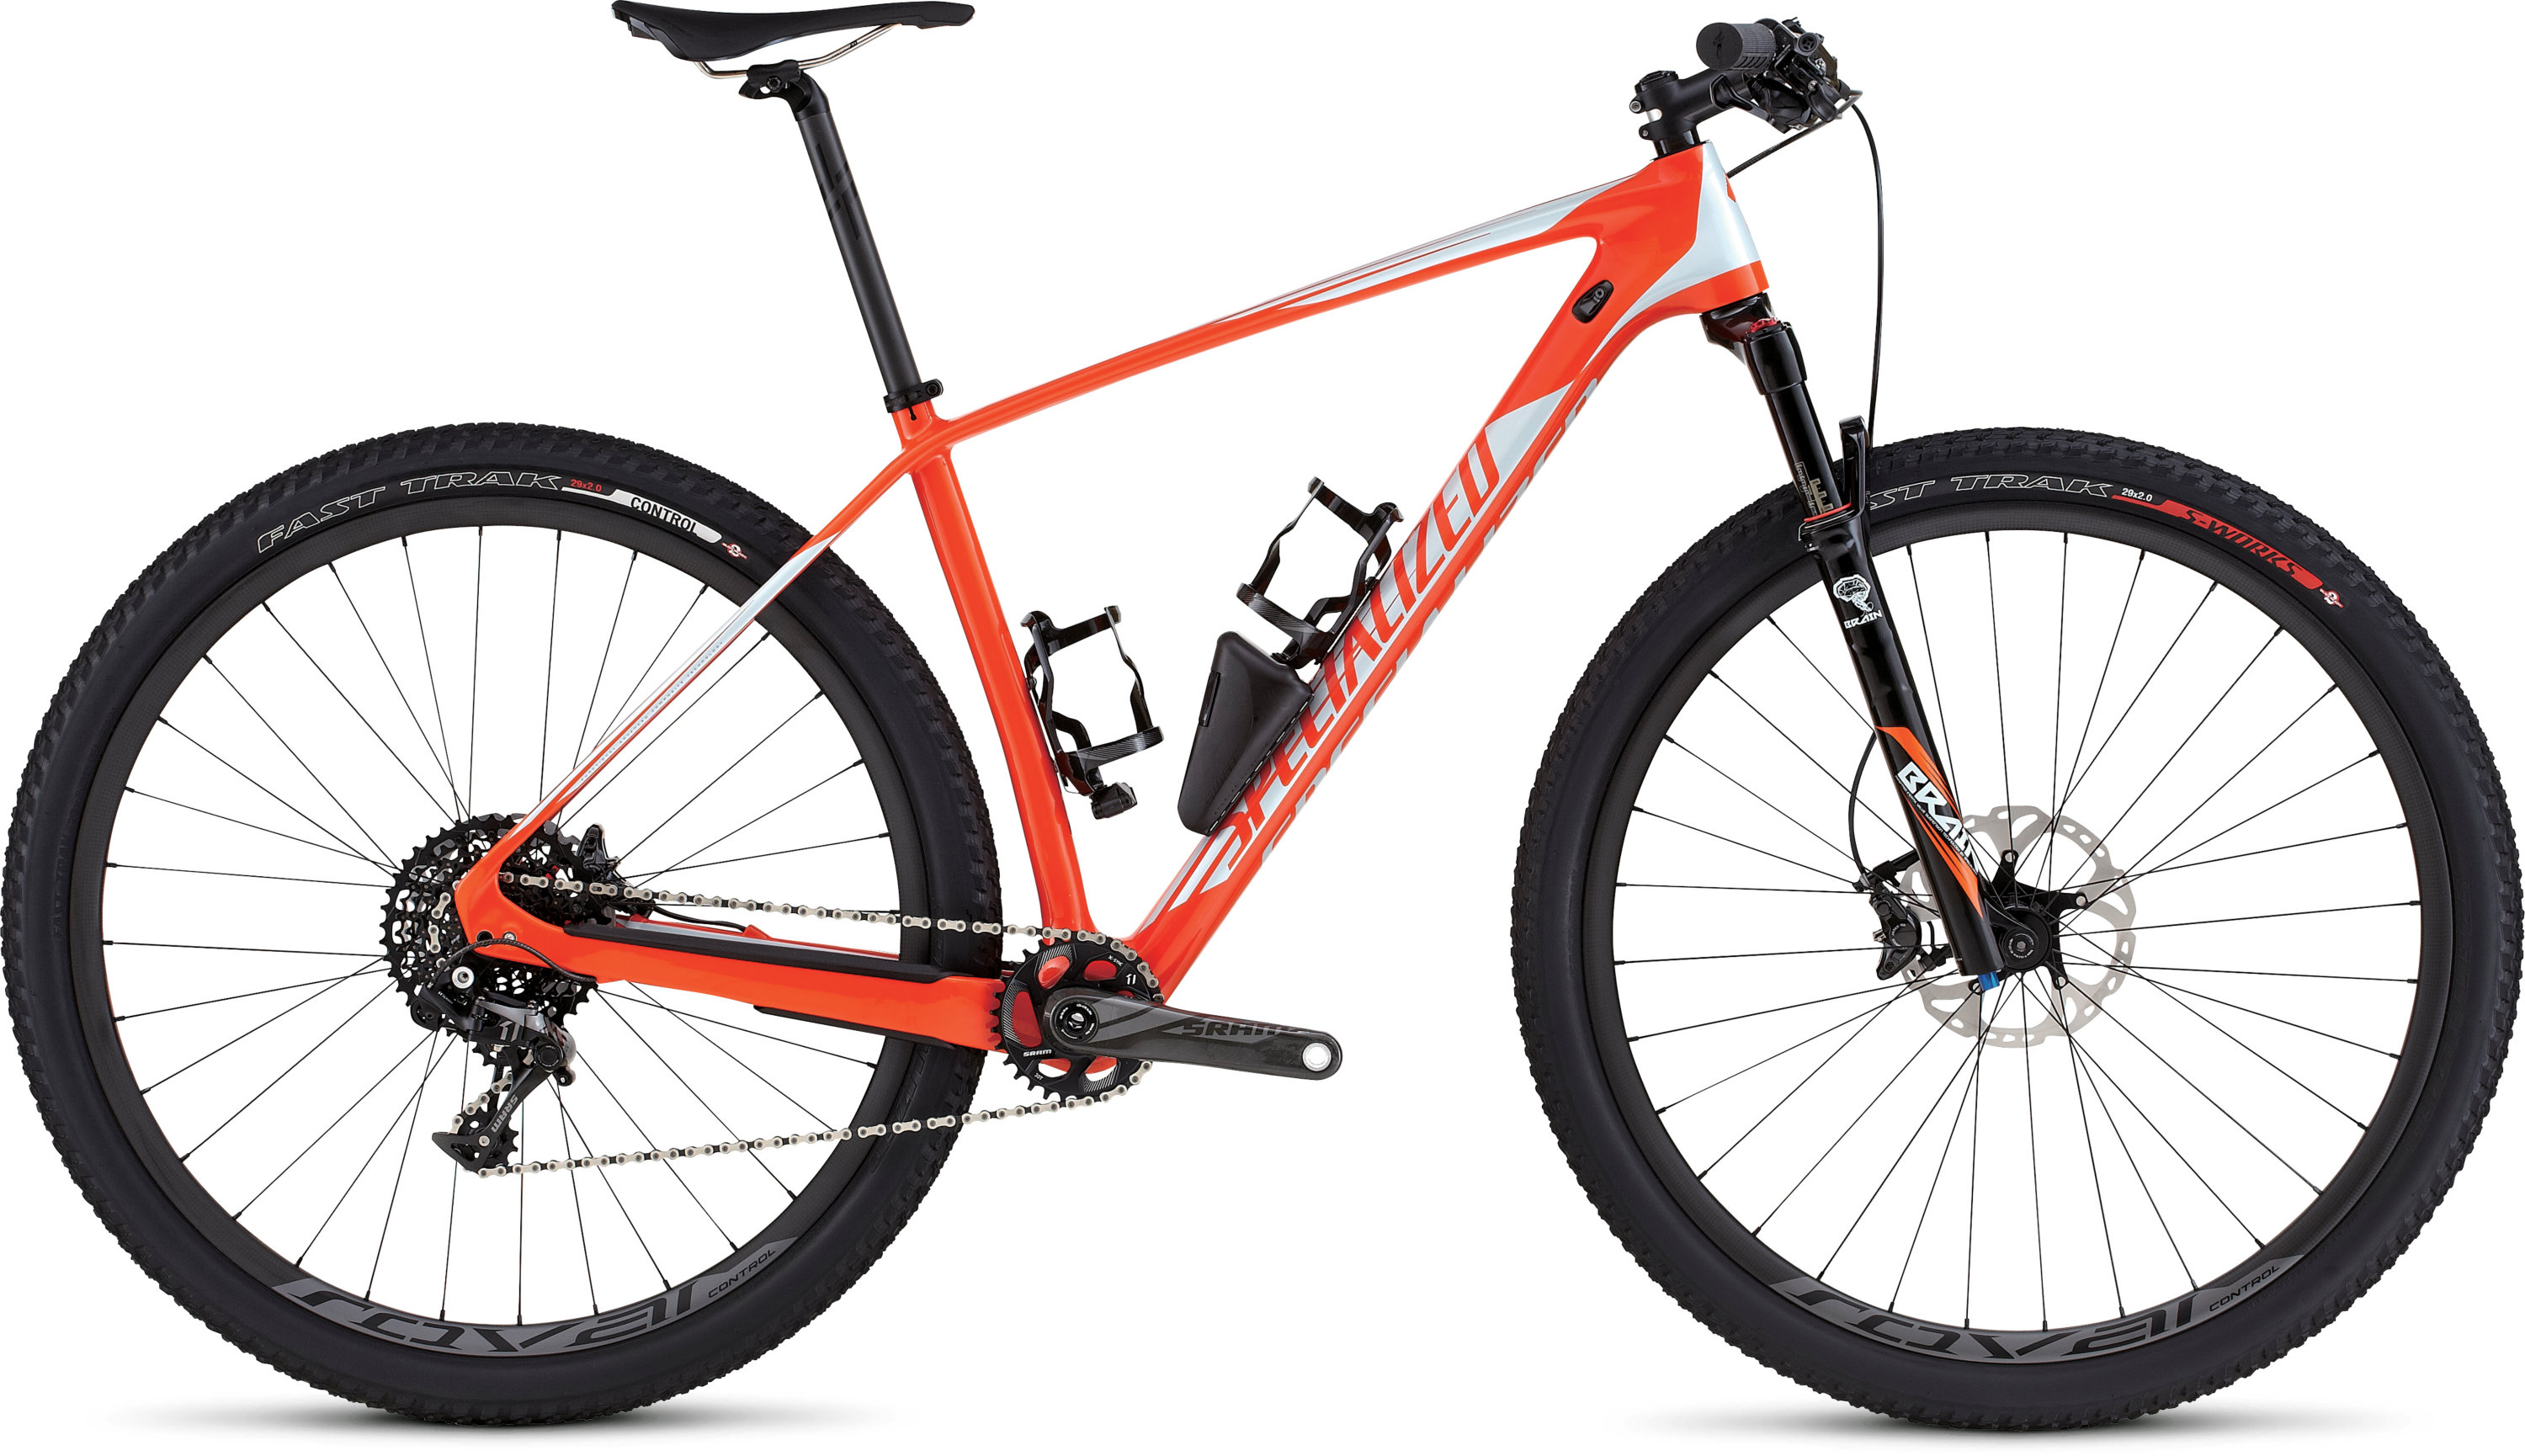 SPECIALIZED SJ HT EXPERT CARBON WC 29 MXORG/BBYBLU S - schneider-sports